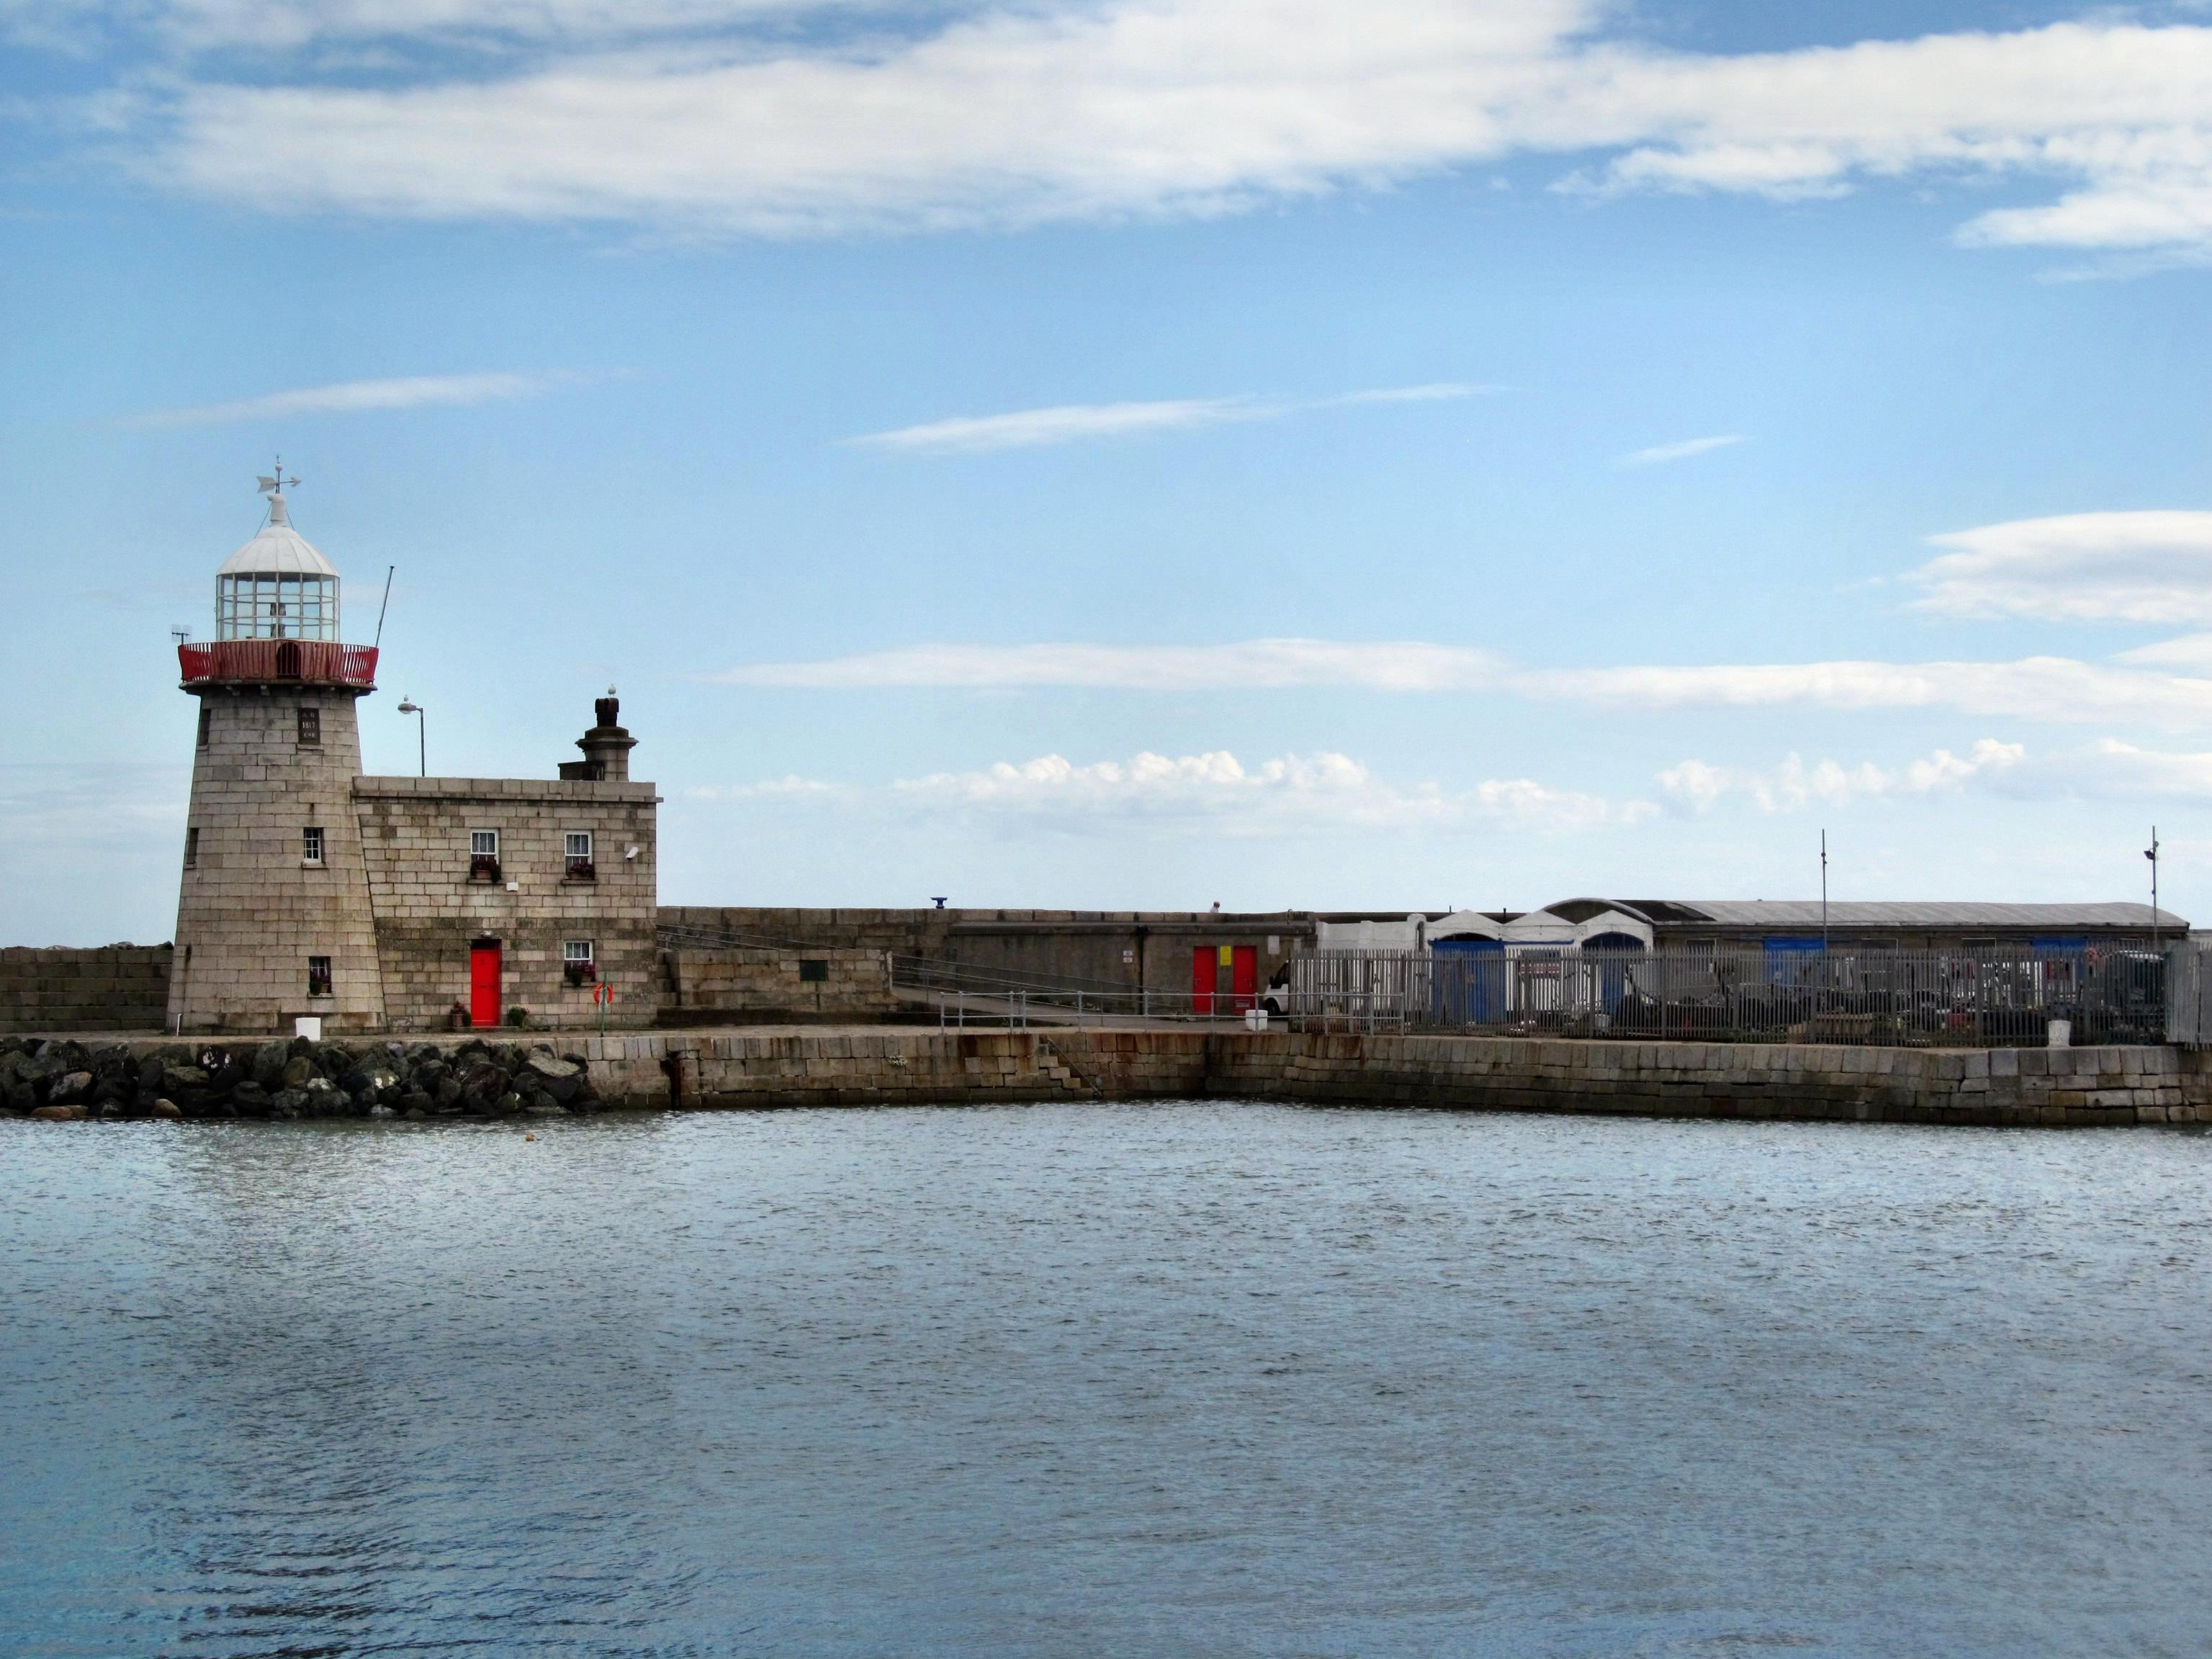 The quay in front of the lighthouse, where the Asgard landed the arms used in the 1916 Easter Rising